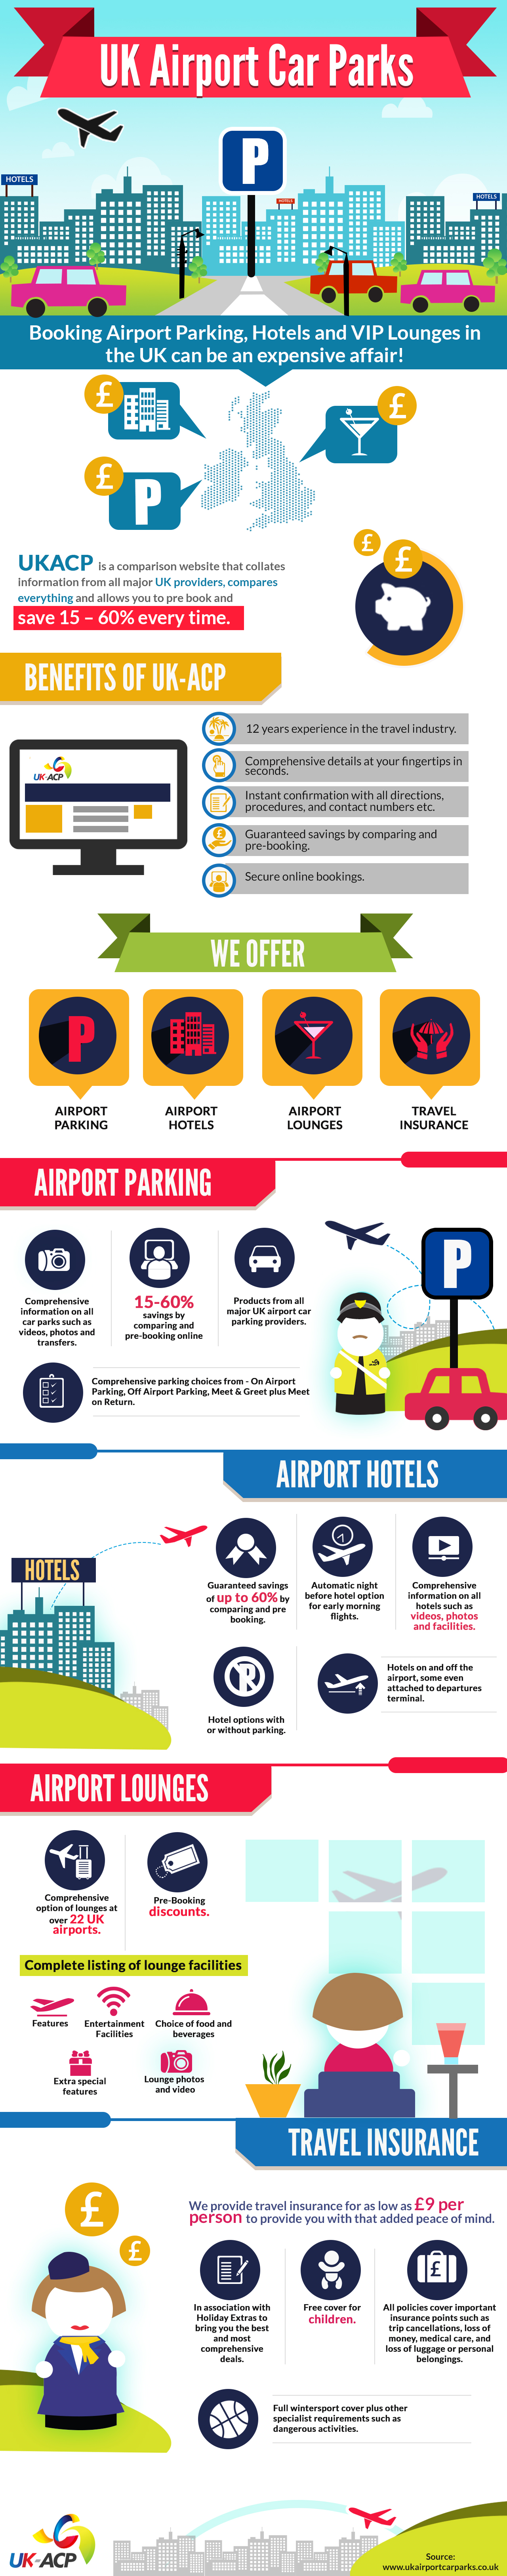 Ukacp infographic uk airport car parks infographic kristyandbryce Gallery